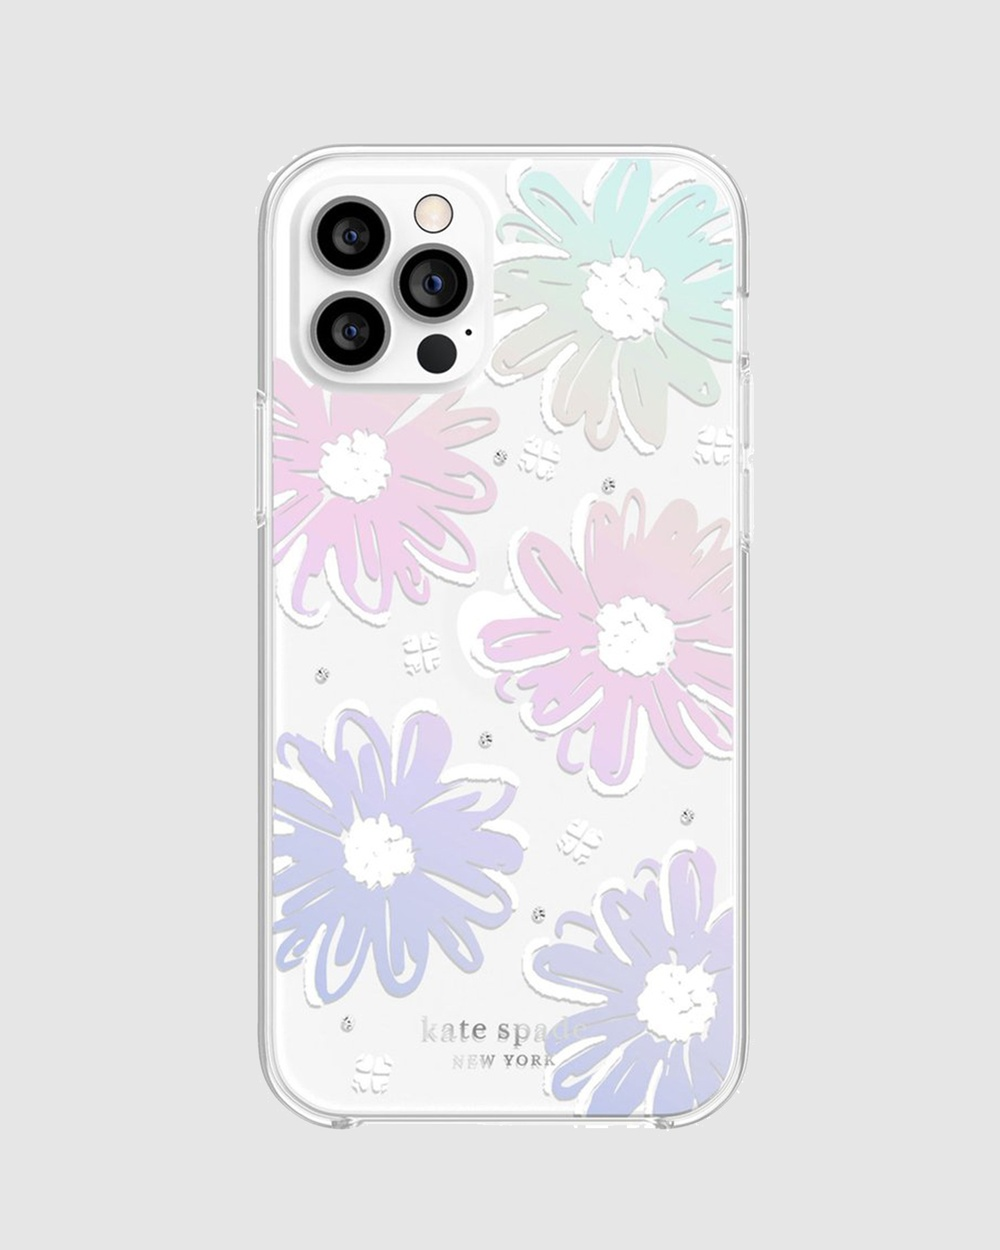 Kate Spade New York Protective Hardshell Case for iPhone 12 Pro Max Tech Accessories Multi Australia